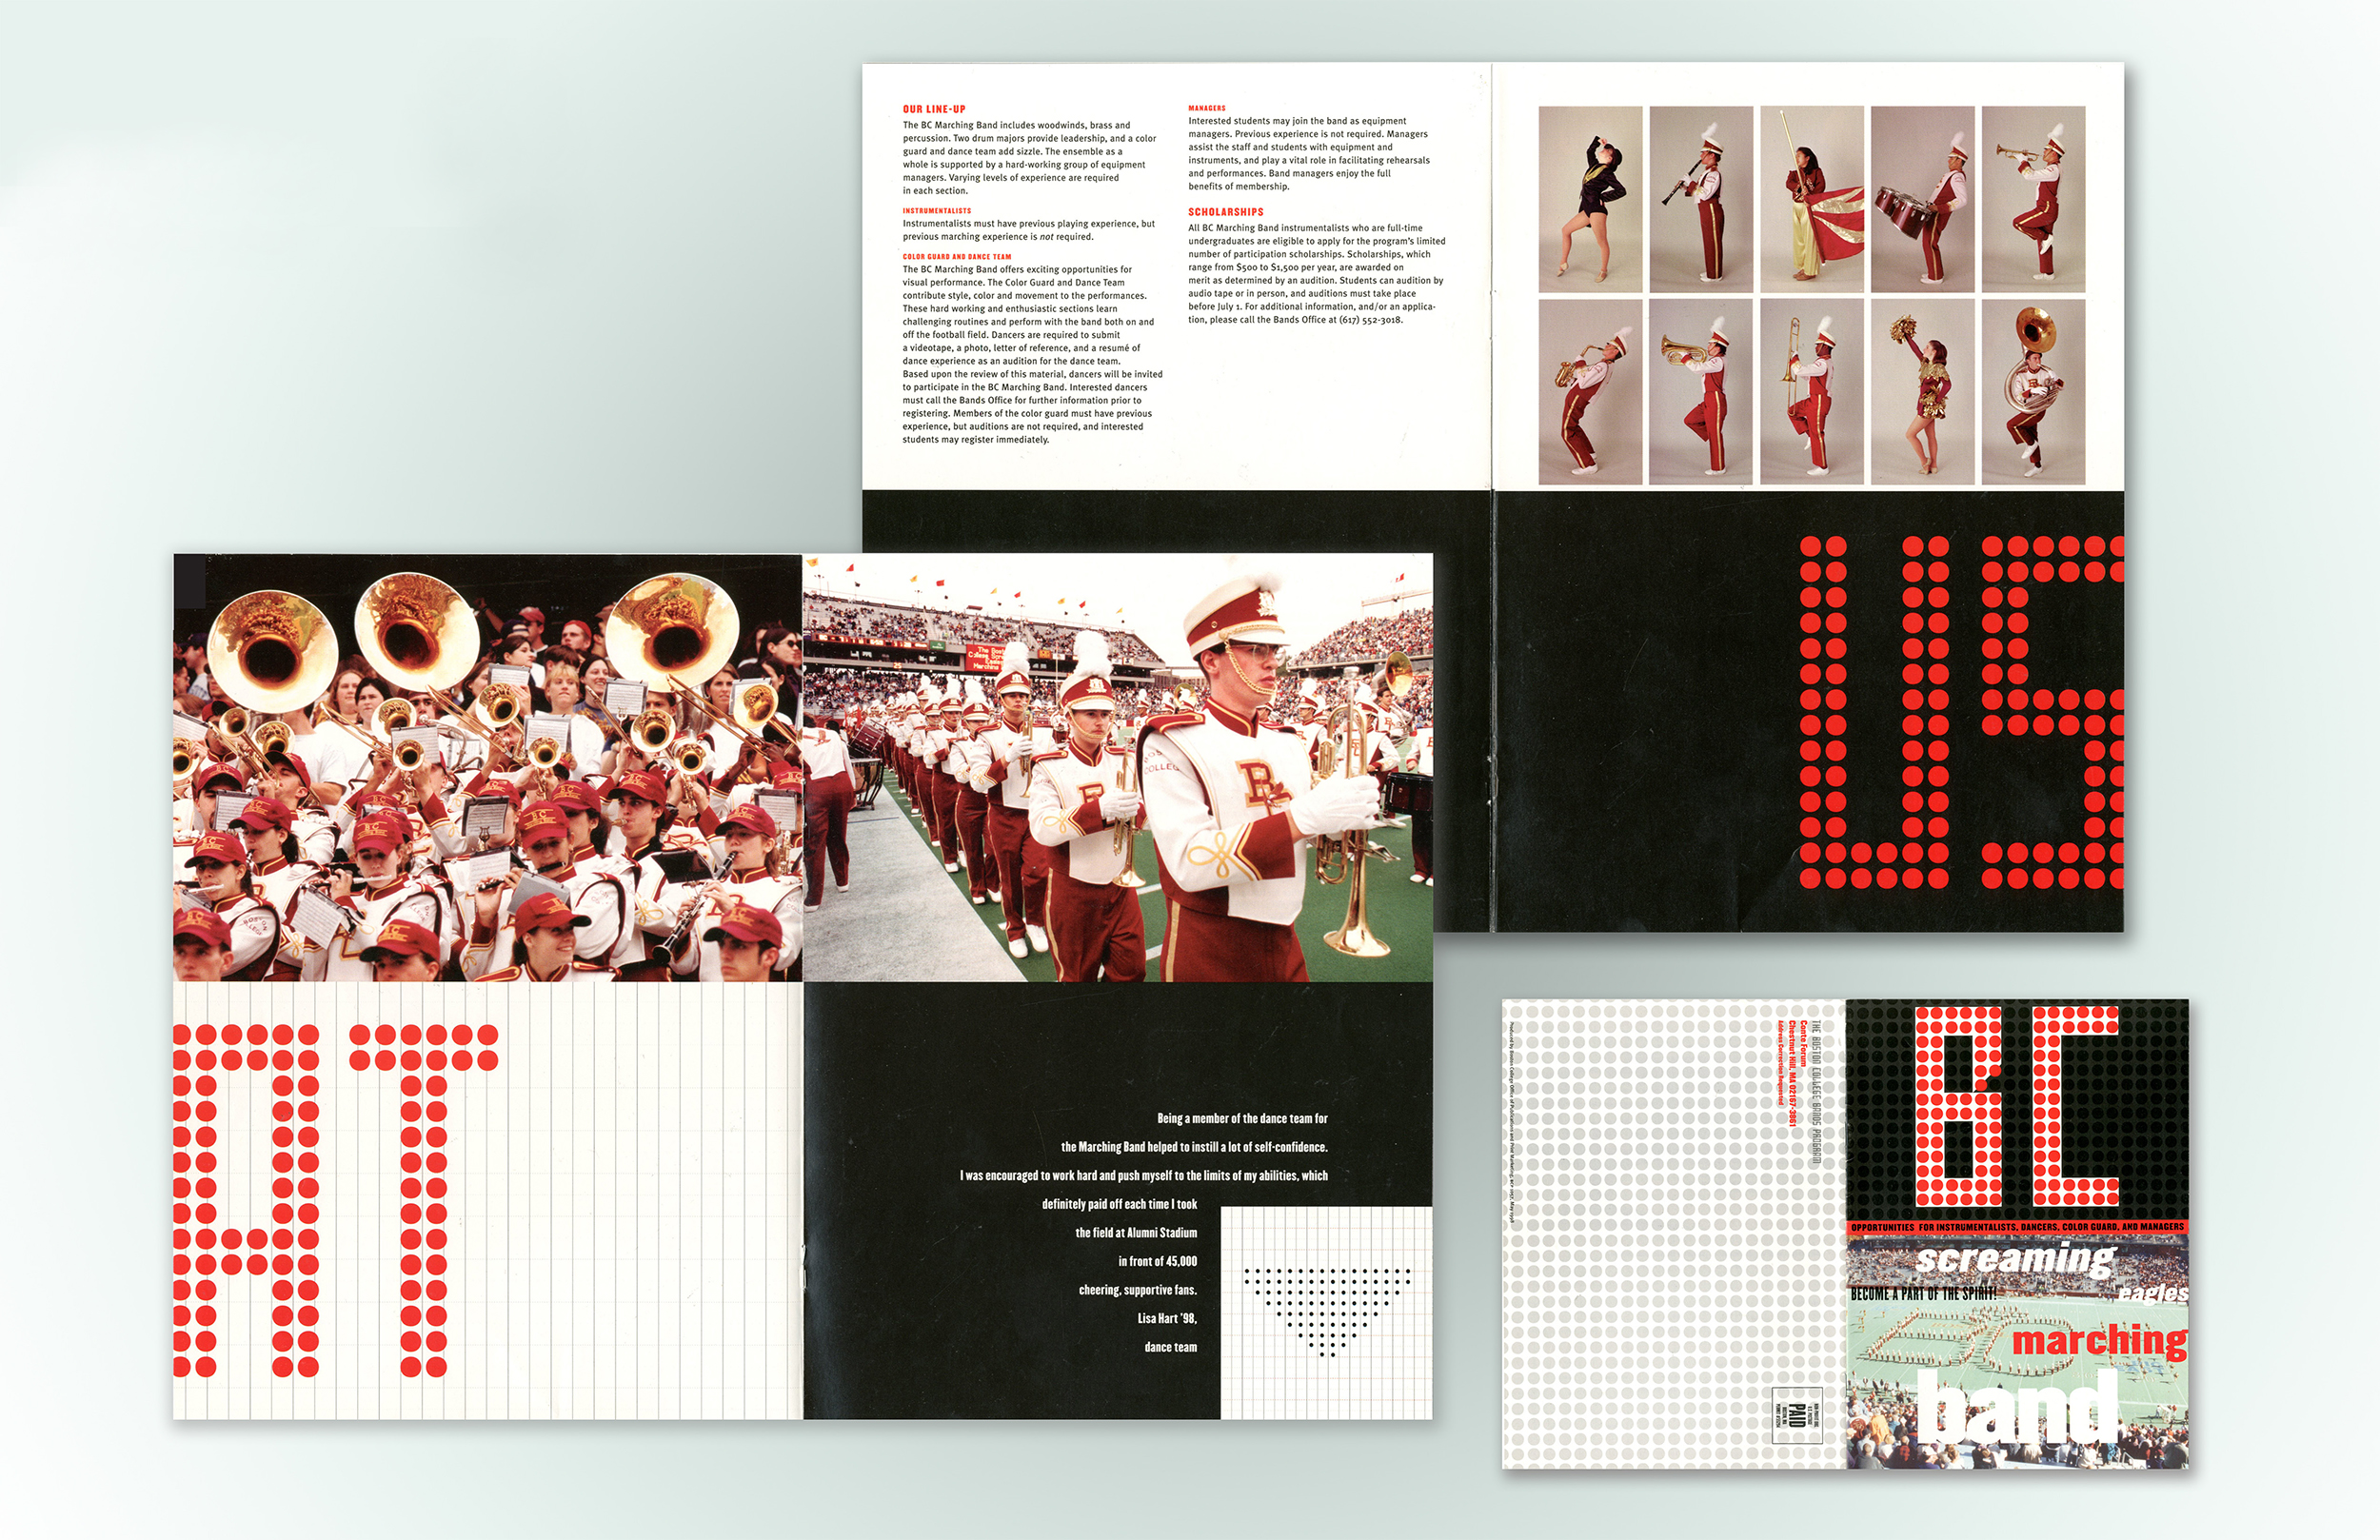 Marching Band brochure design for Boston College.